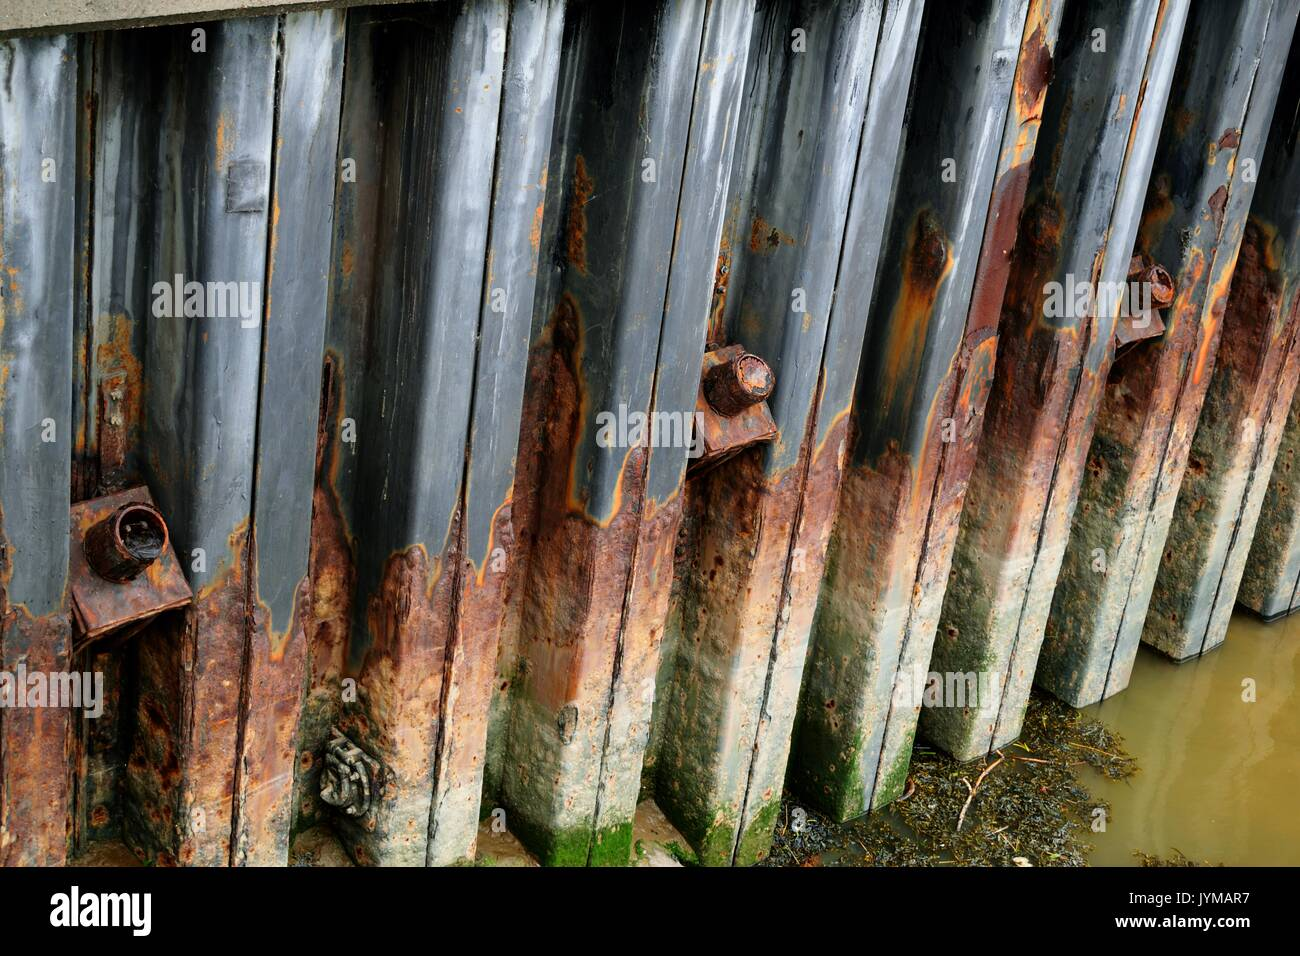 Sheet pile river wall with structural anchors showing anchor heads - Stock Image